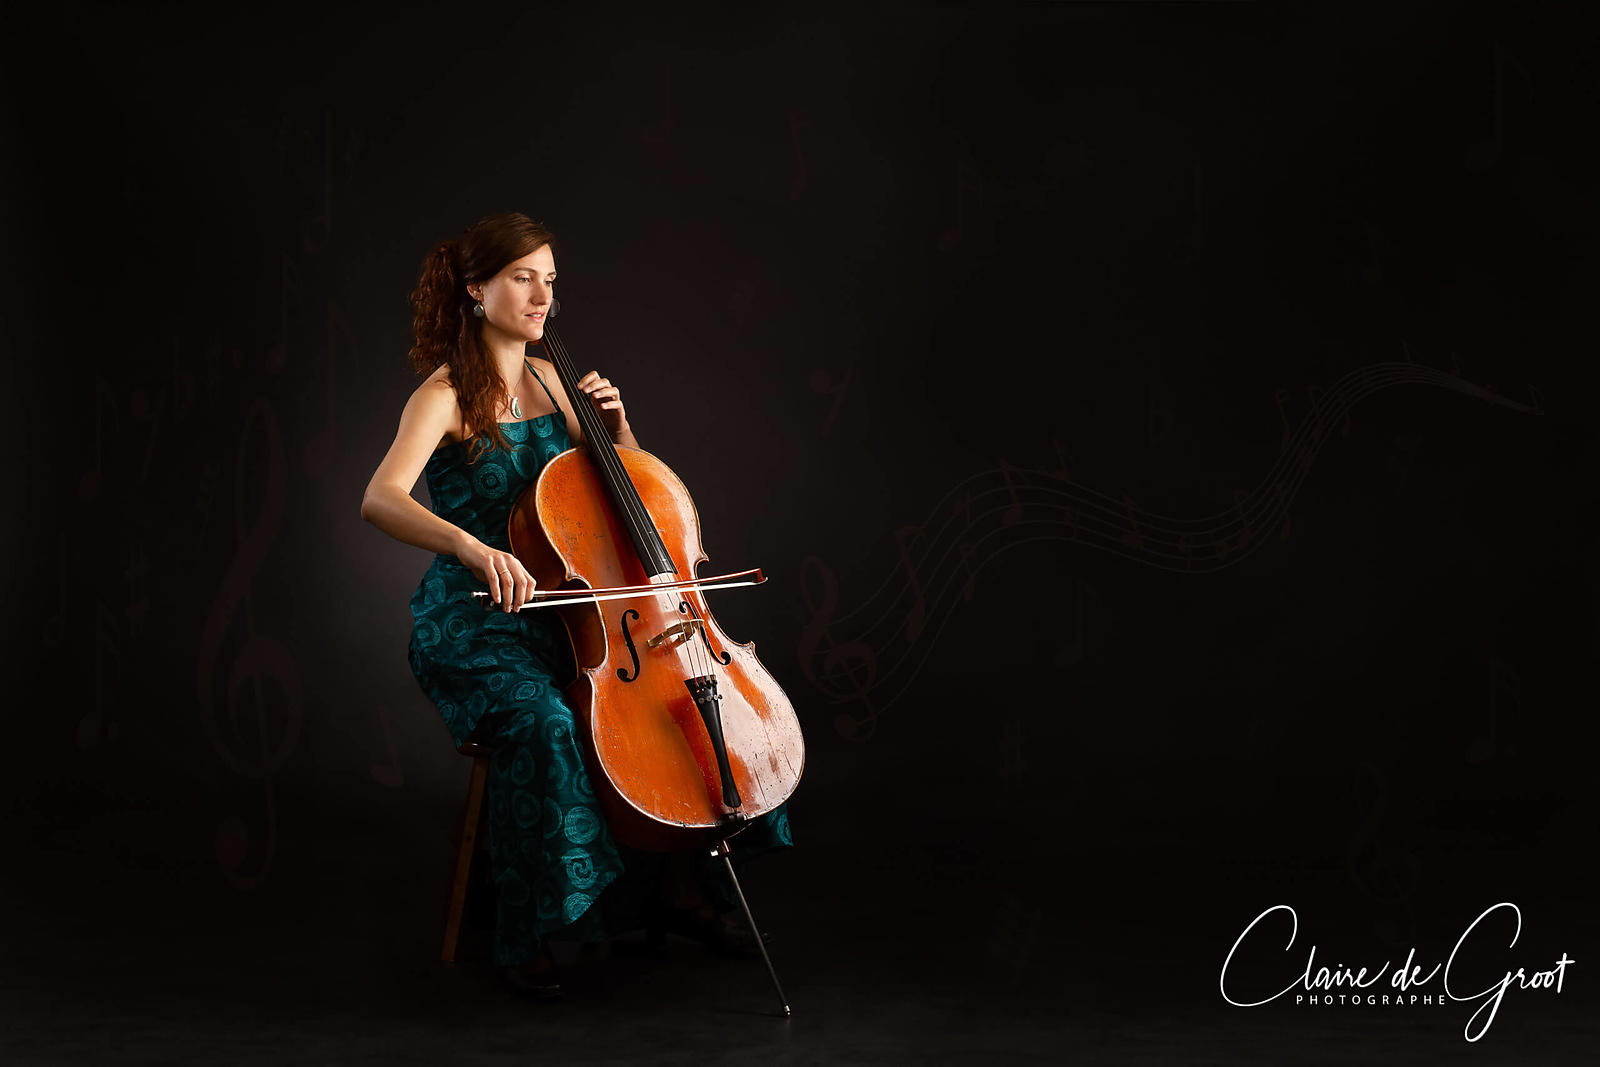 Musical Portrait: Cello